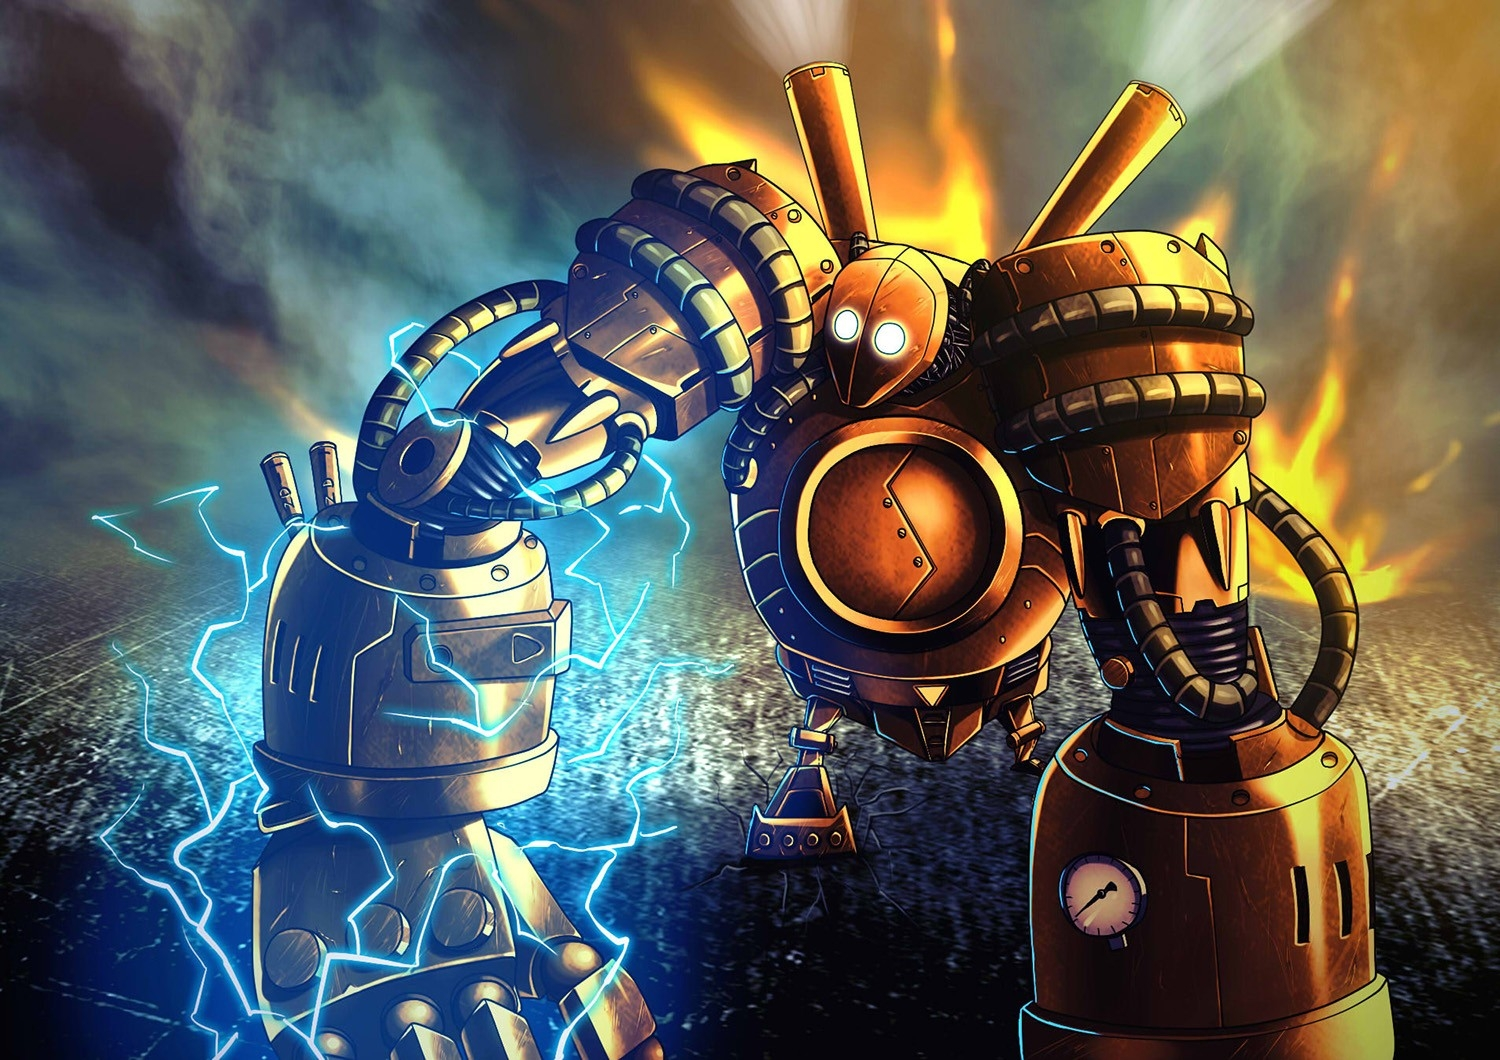 Download Wallpapers Download 640x960 steampunk league of 1500x1060